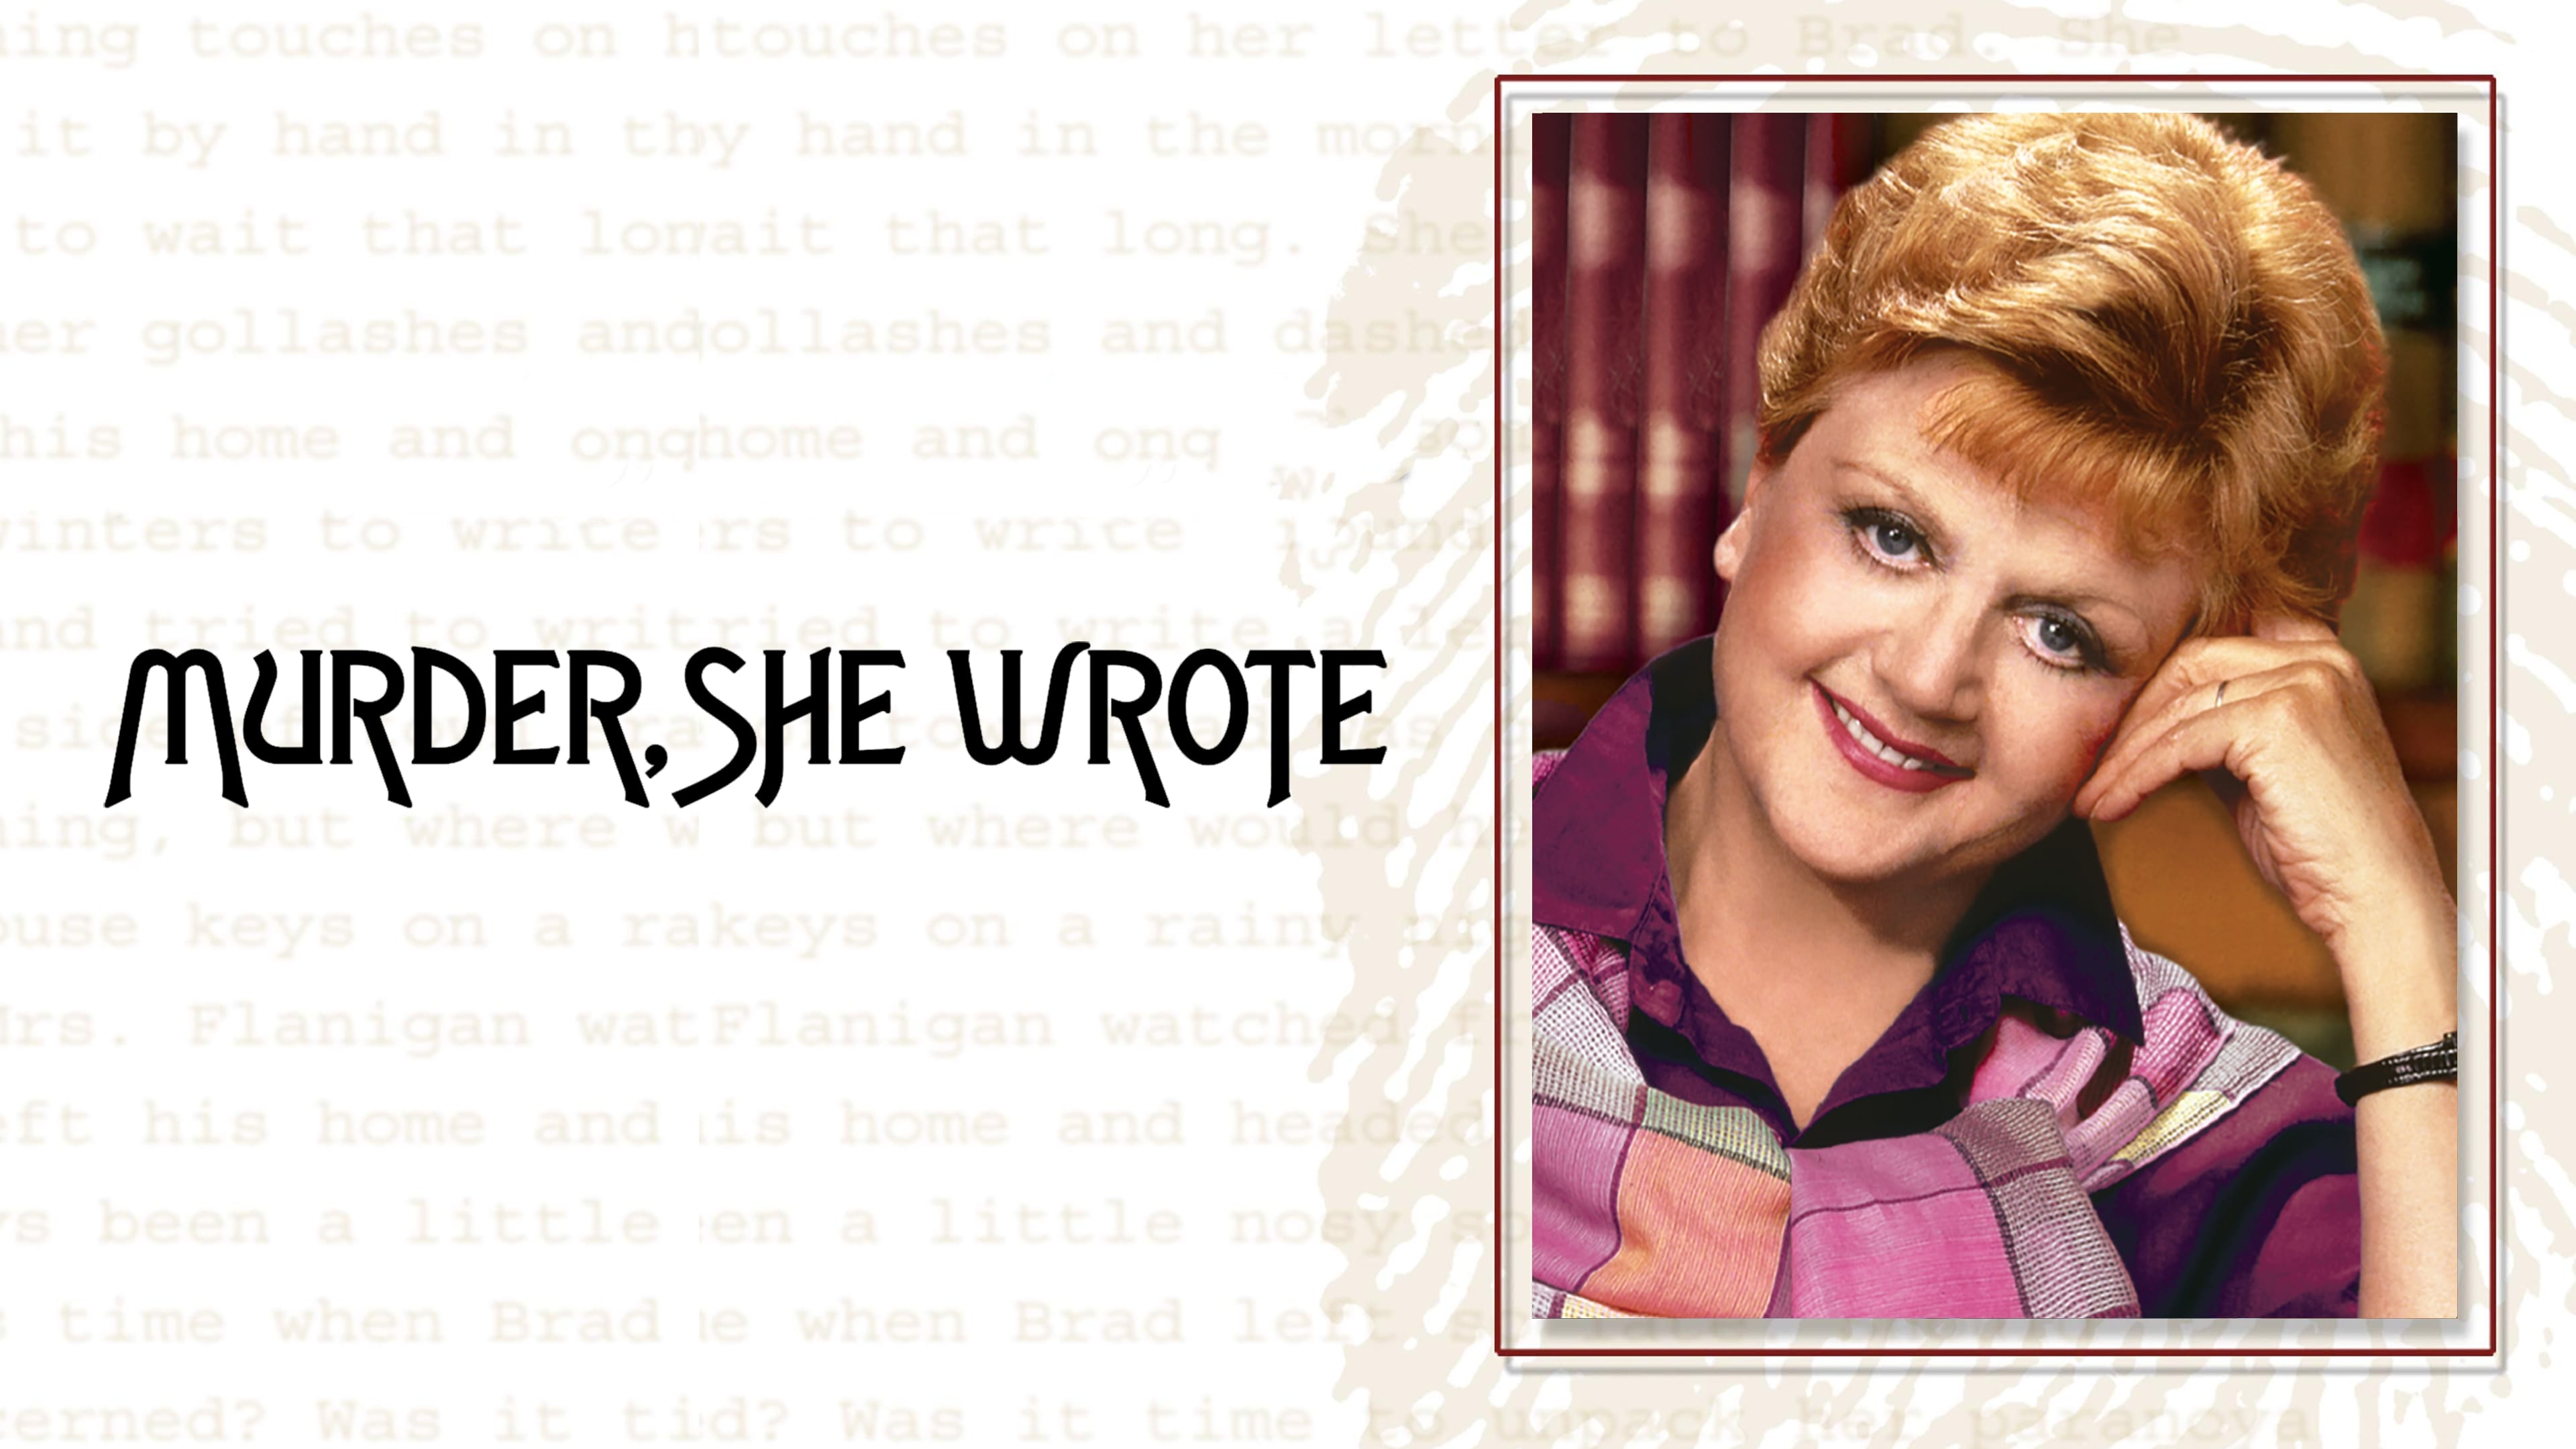 Murder, She Wrote - Season 3